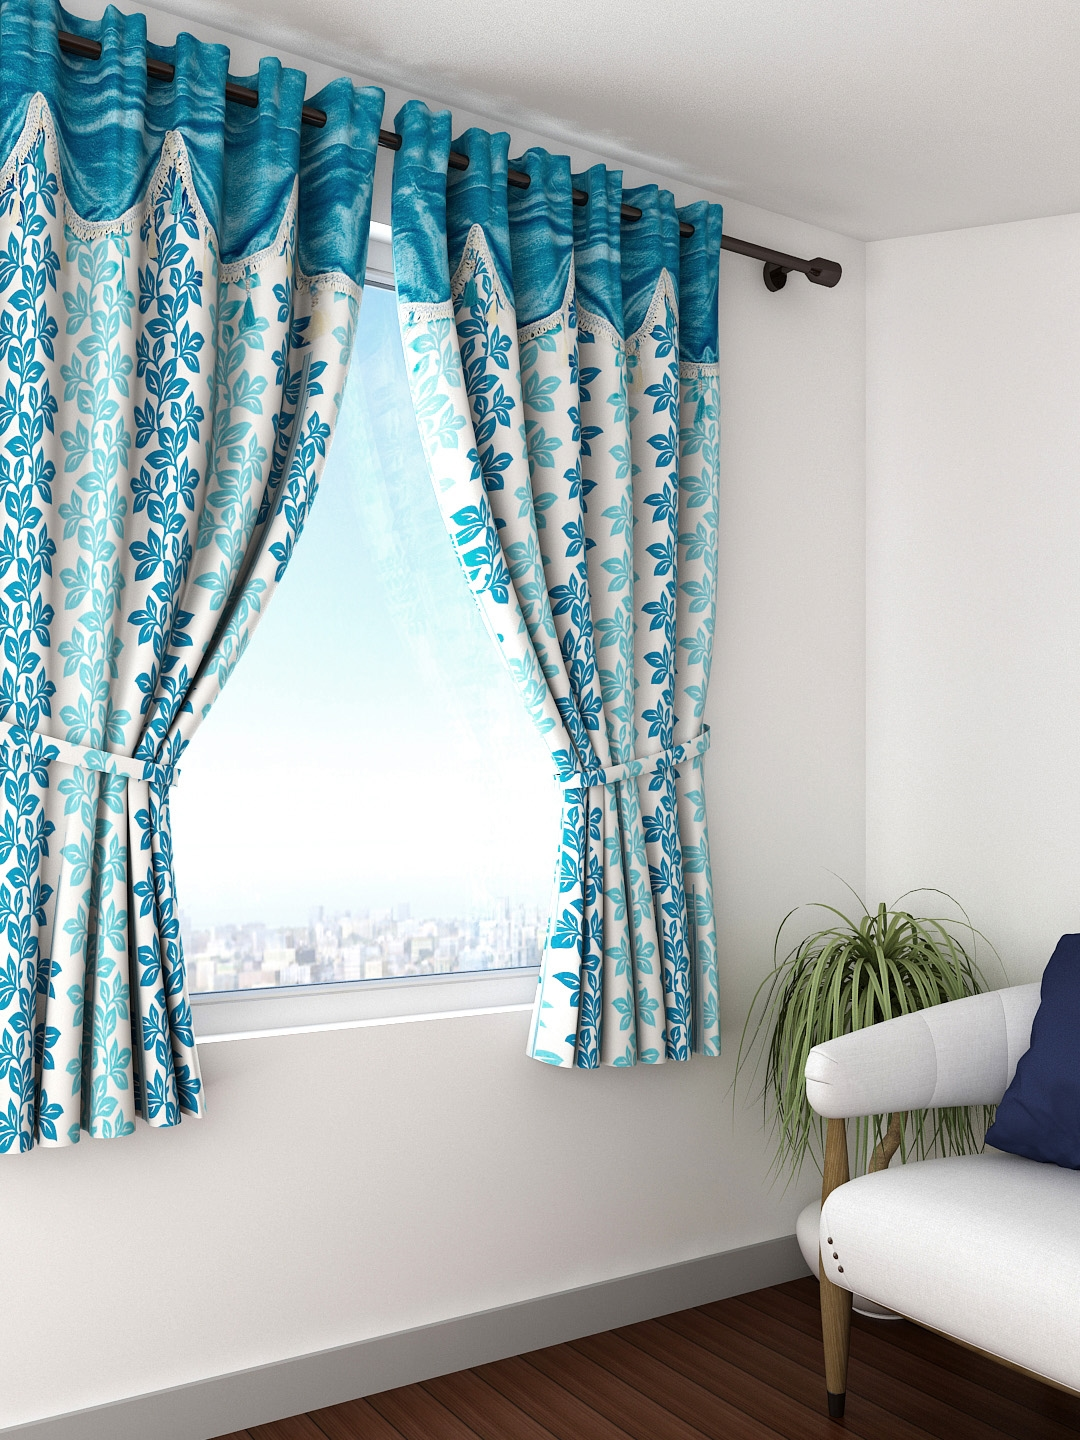 Buy Cortina Set Of 2 Off White Blue Printed Room Darkening Window Curtains Curtains And